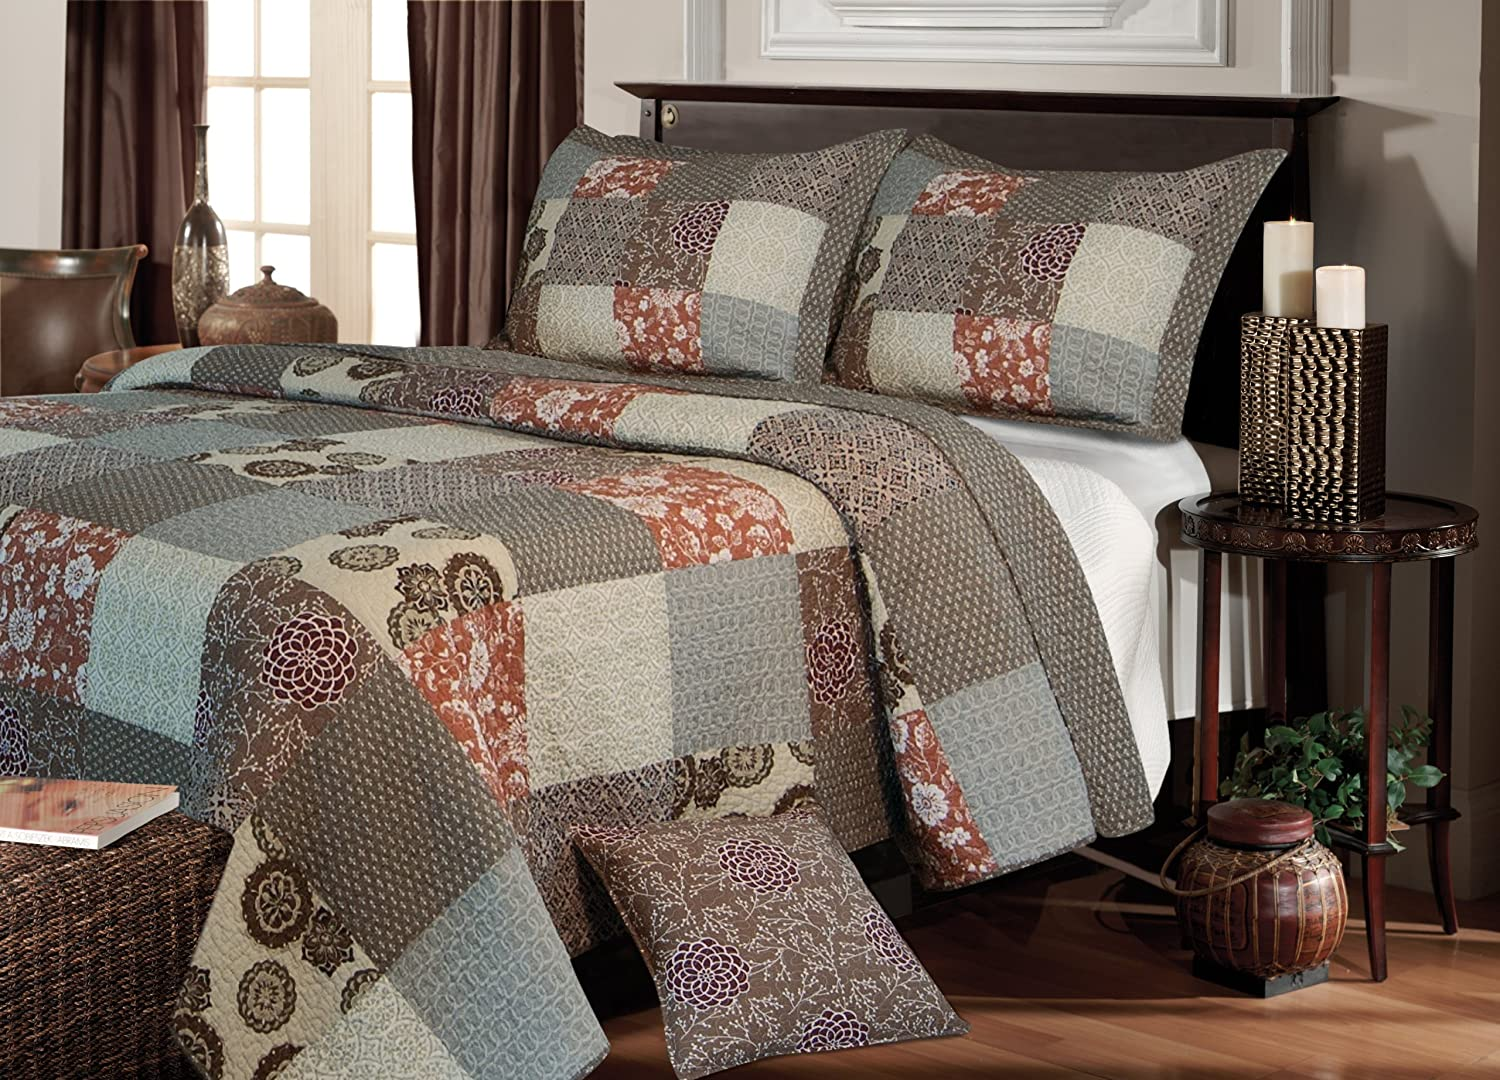 Amazon.com: Greenland Home Fashions Stella Quilt Set, King: Home ... : quilted comforter sets - Adamdwight.com